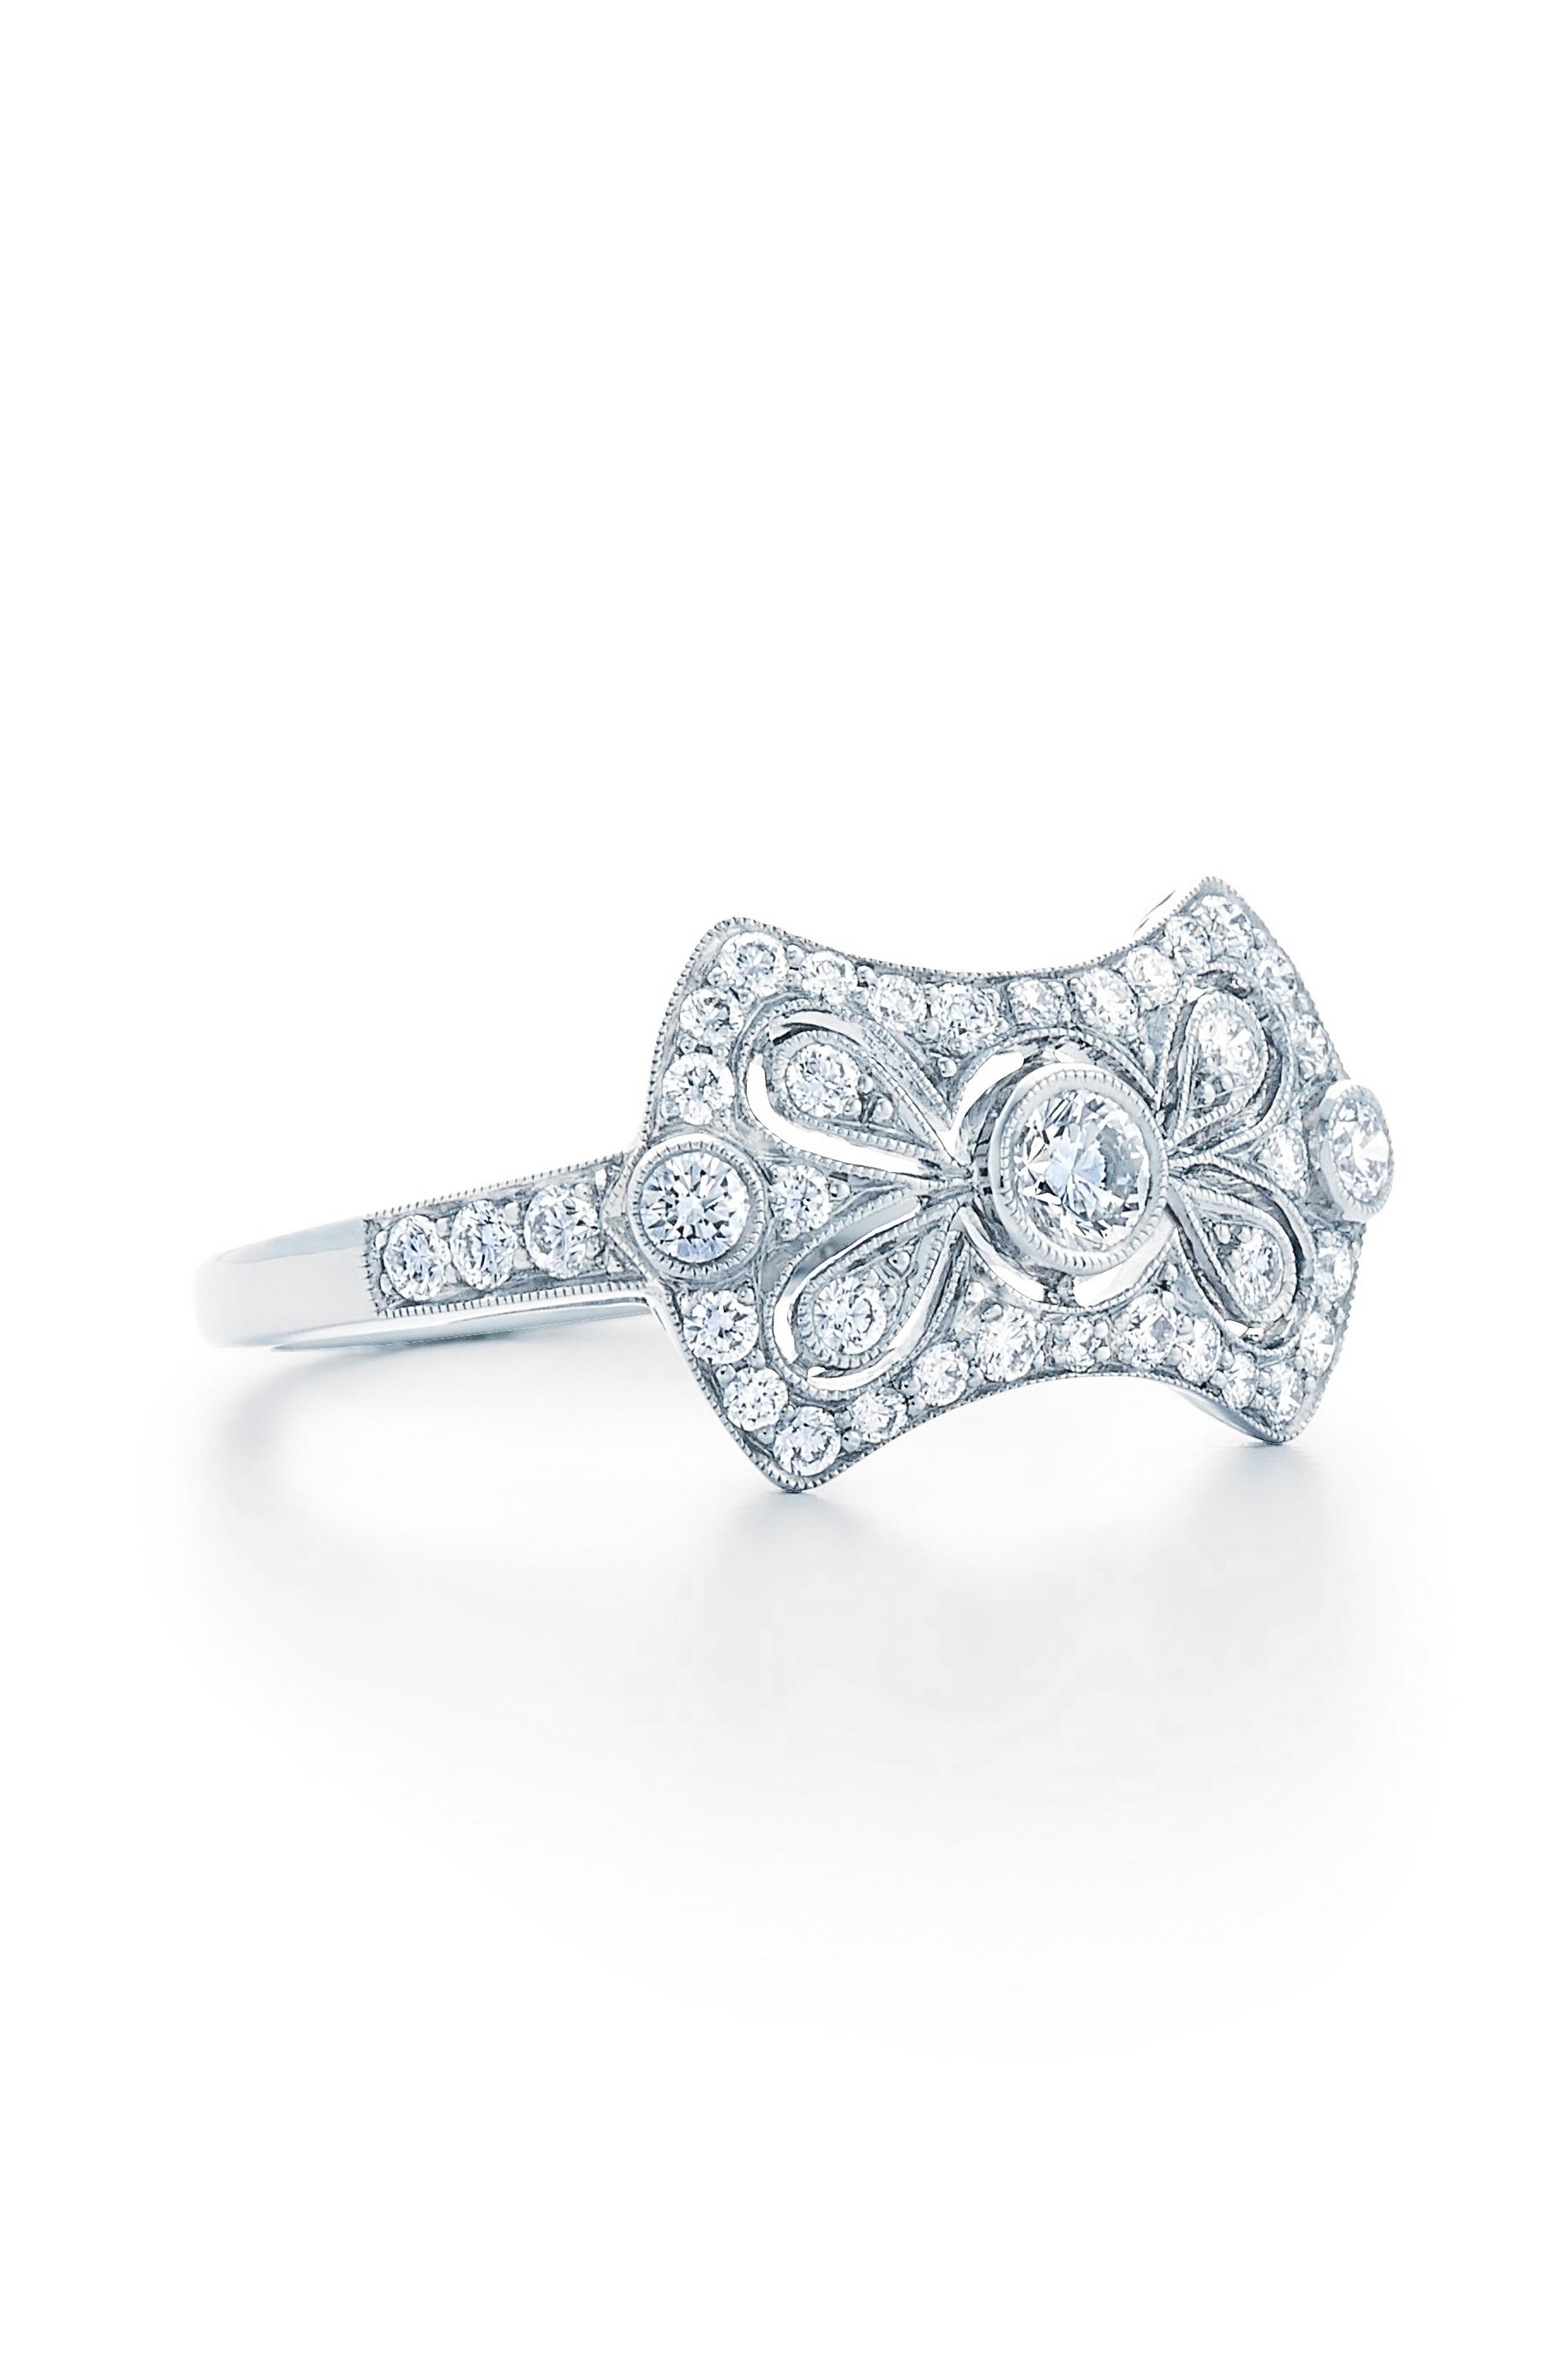 Alternate Image 1 Selected - Kwiat Vintage Bow Diamond Ring